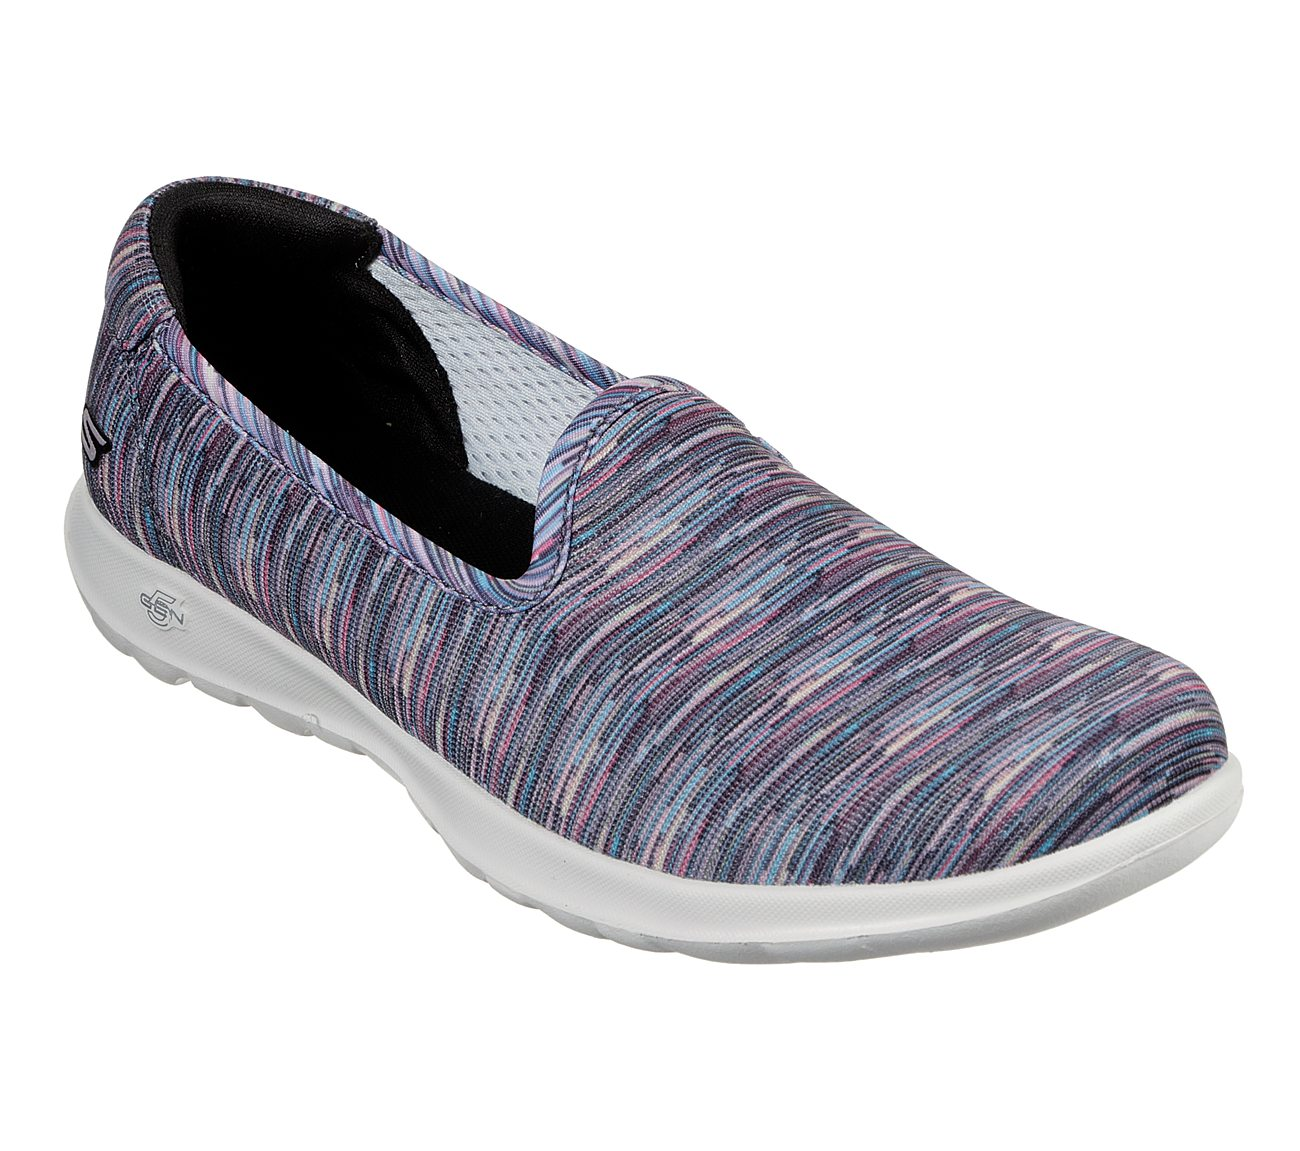 SKECHERS GOWALK LITE - SHOWY